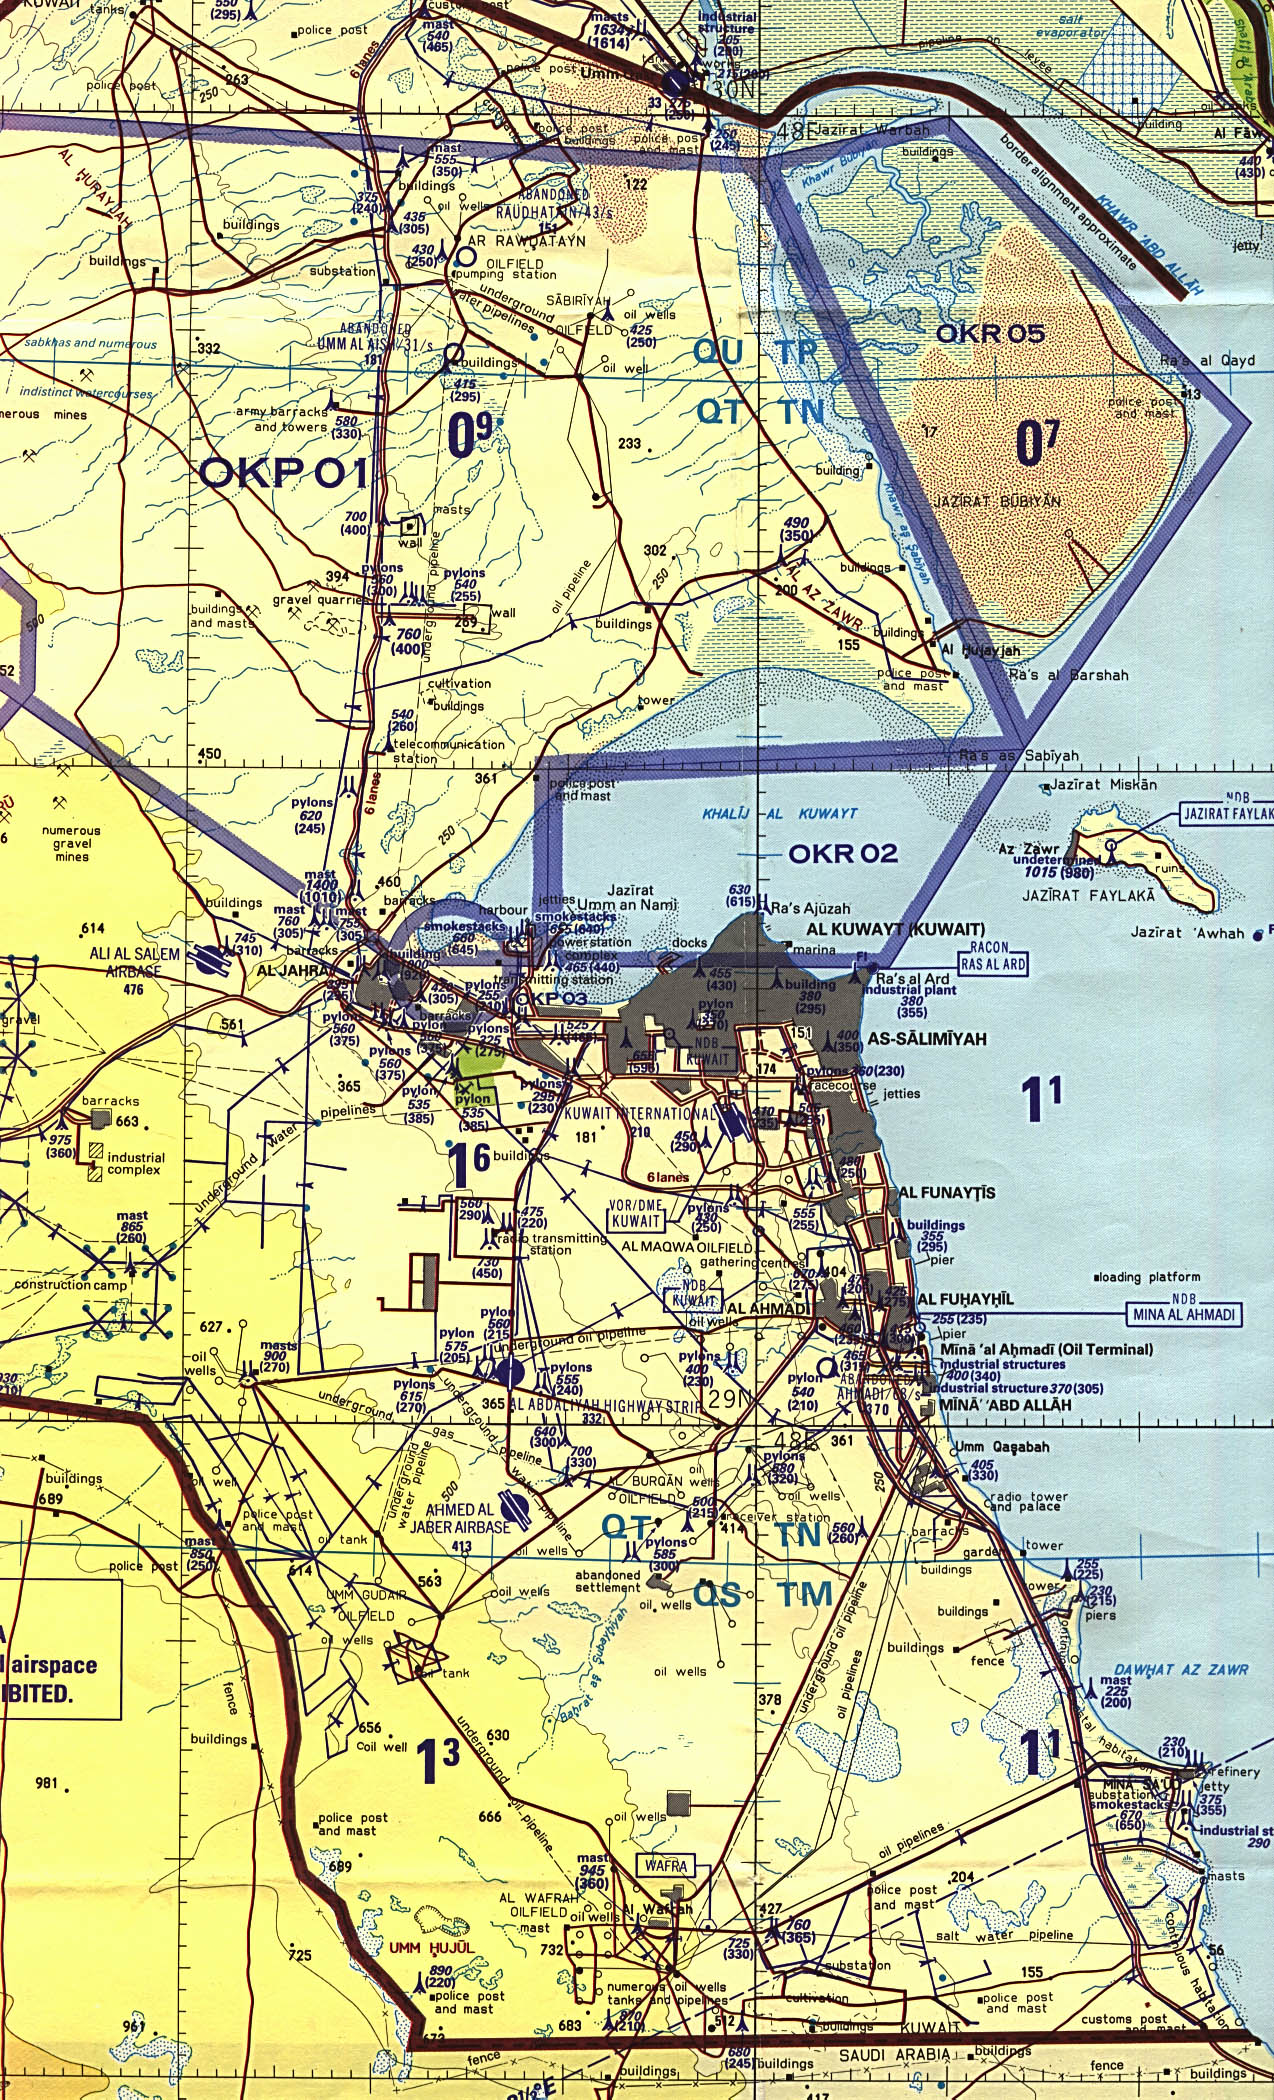 Map of Kuwait Eastern Kuwait and Kuwait City (tactical pilotage chart) original scale 1:500,000 Portion of Defense Mapping Agency TPC H-6B 1991 (952K) Not for navigational use